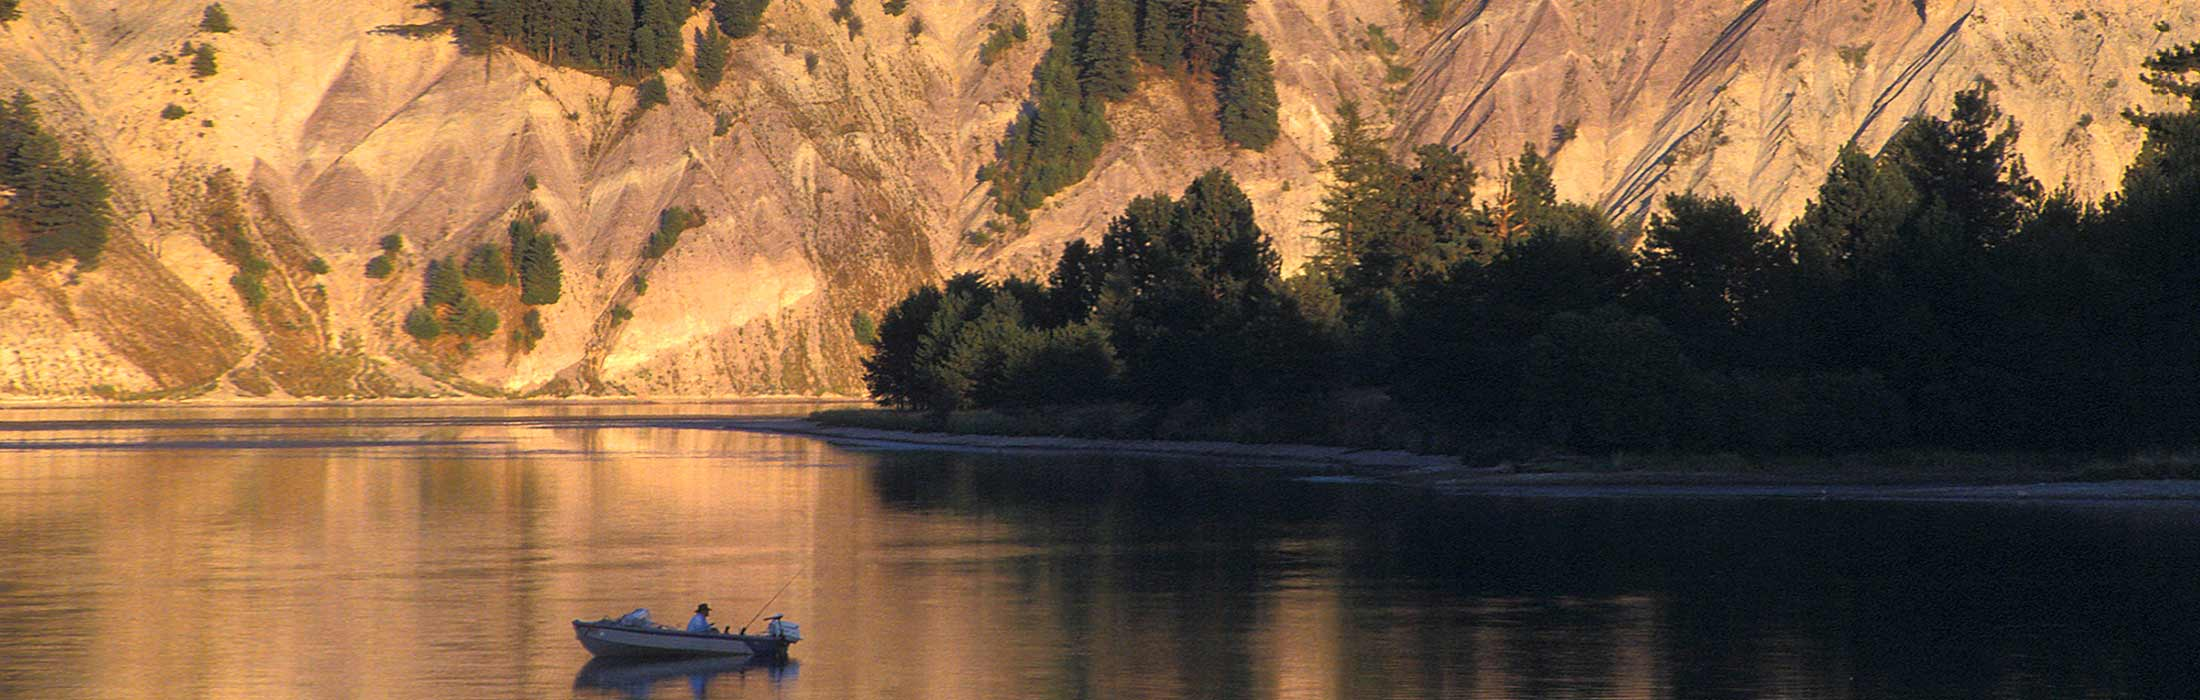 Fishing in Sanders County Montana